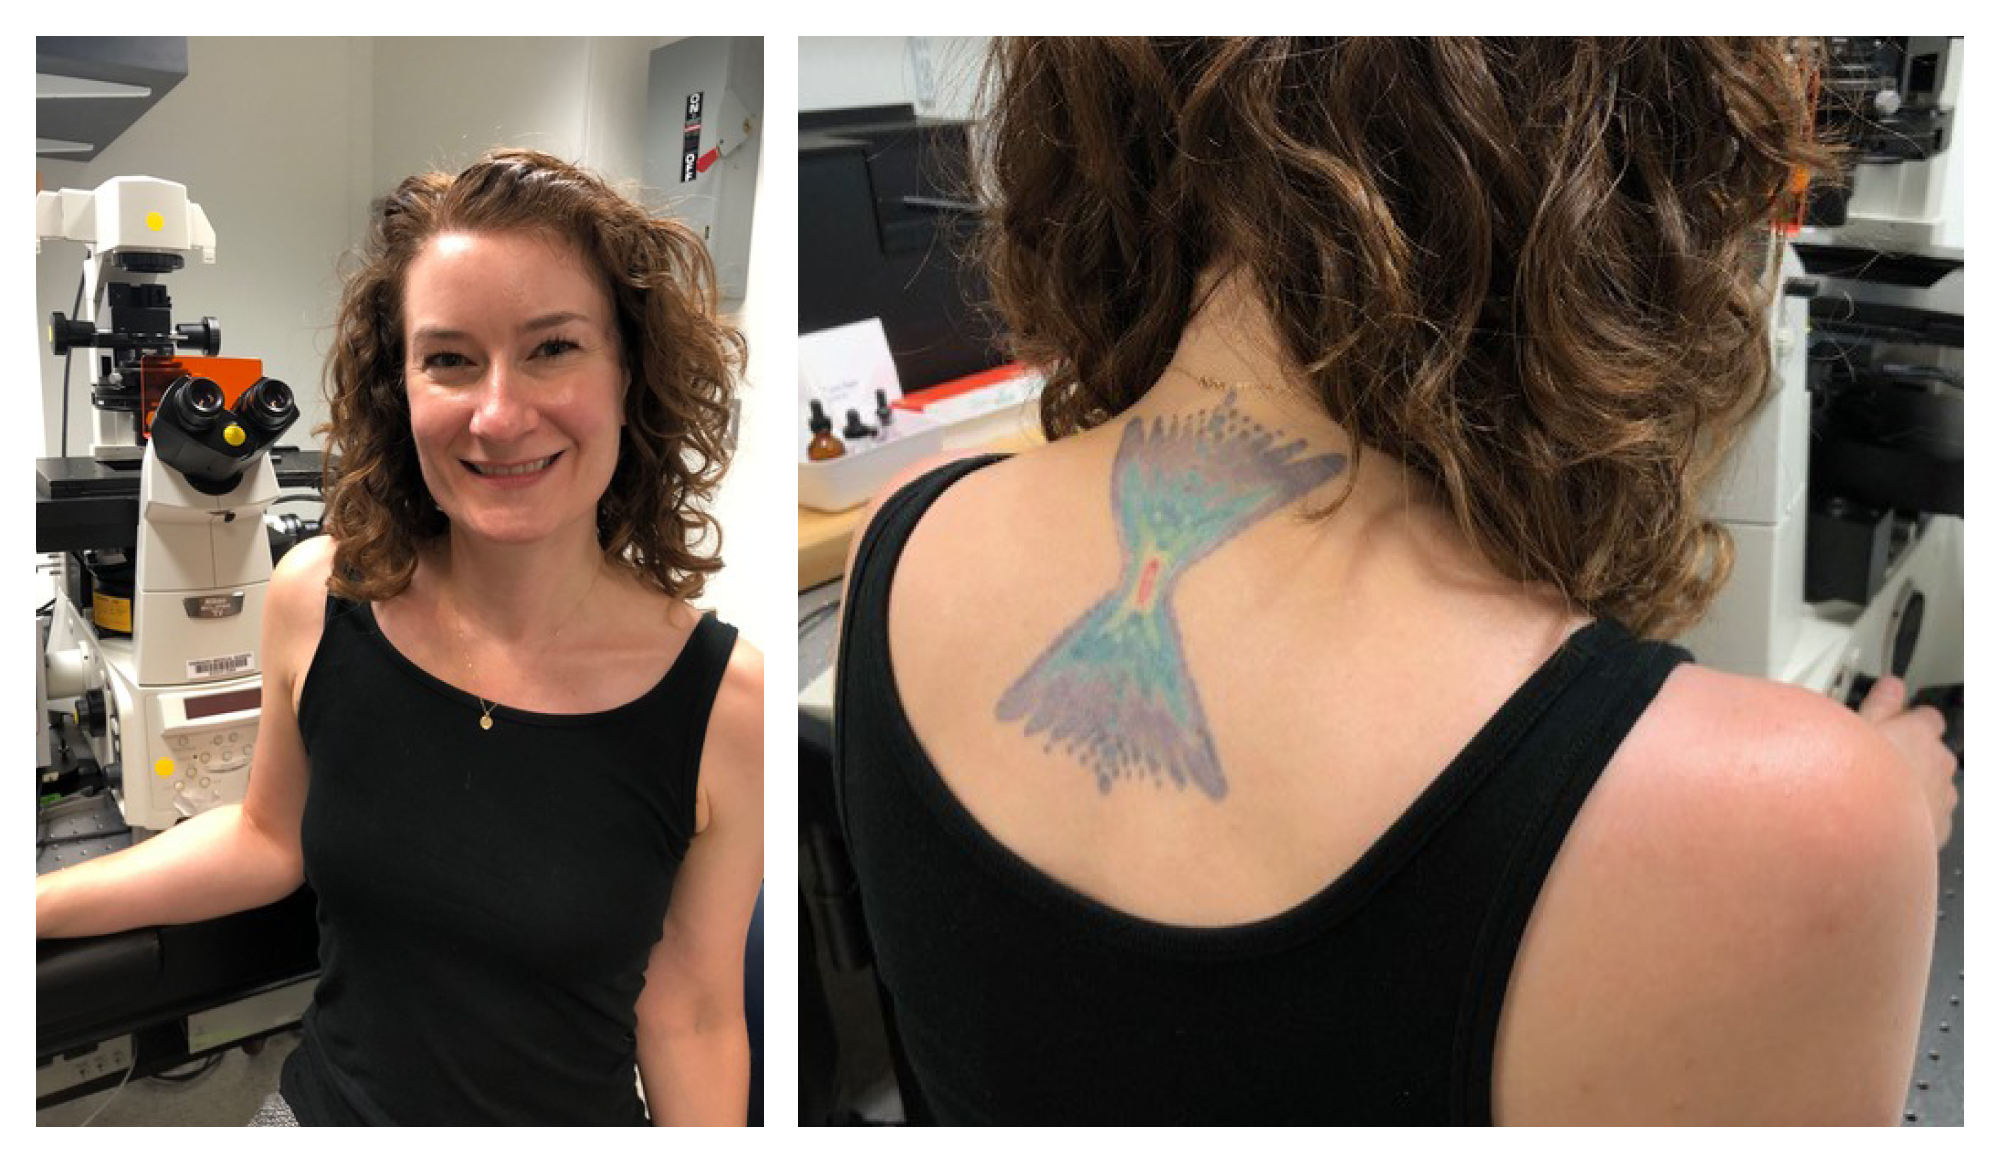 Photo collage of Jennifer Waters and her tattoo depicting point spread function in blues and purples